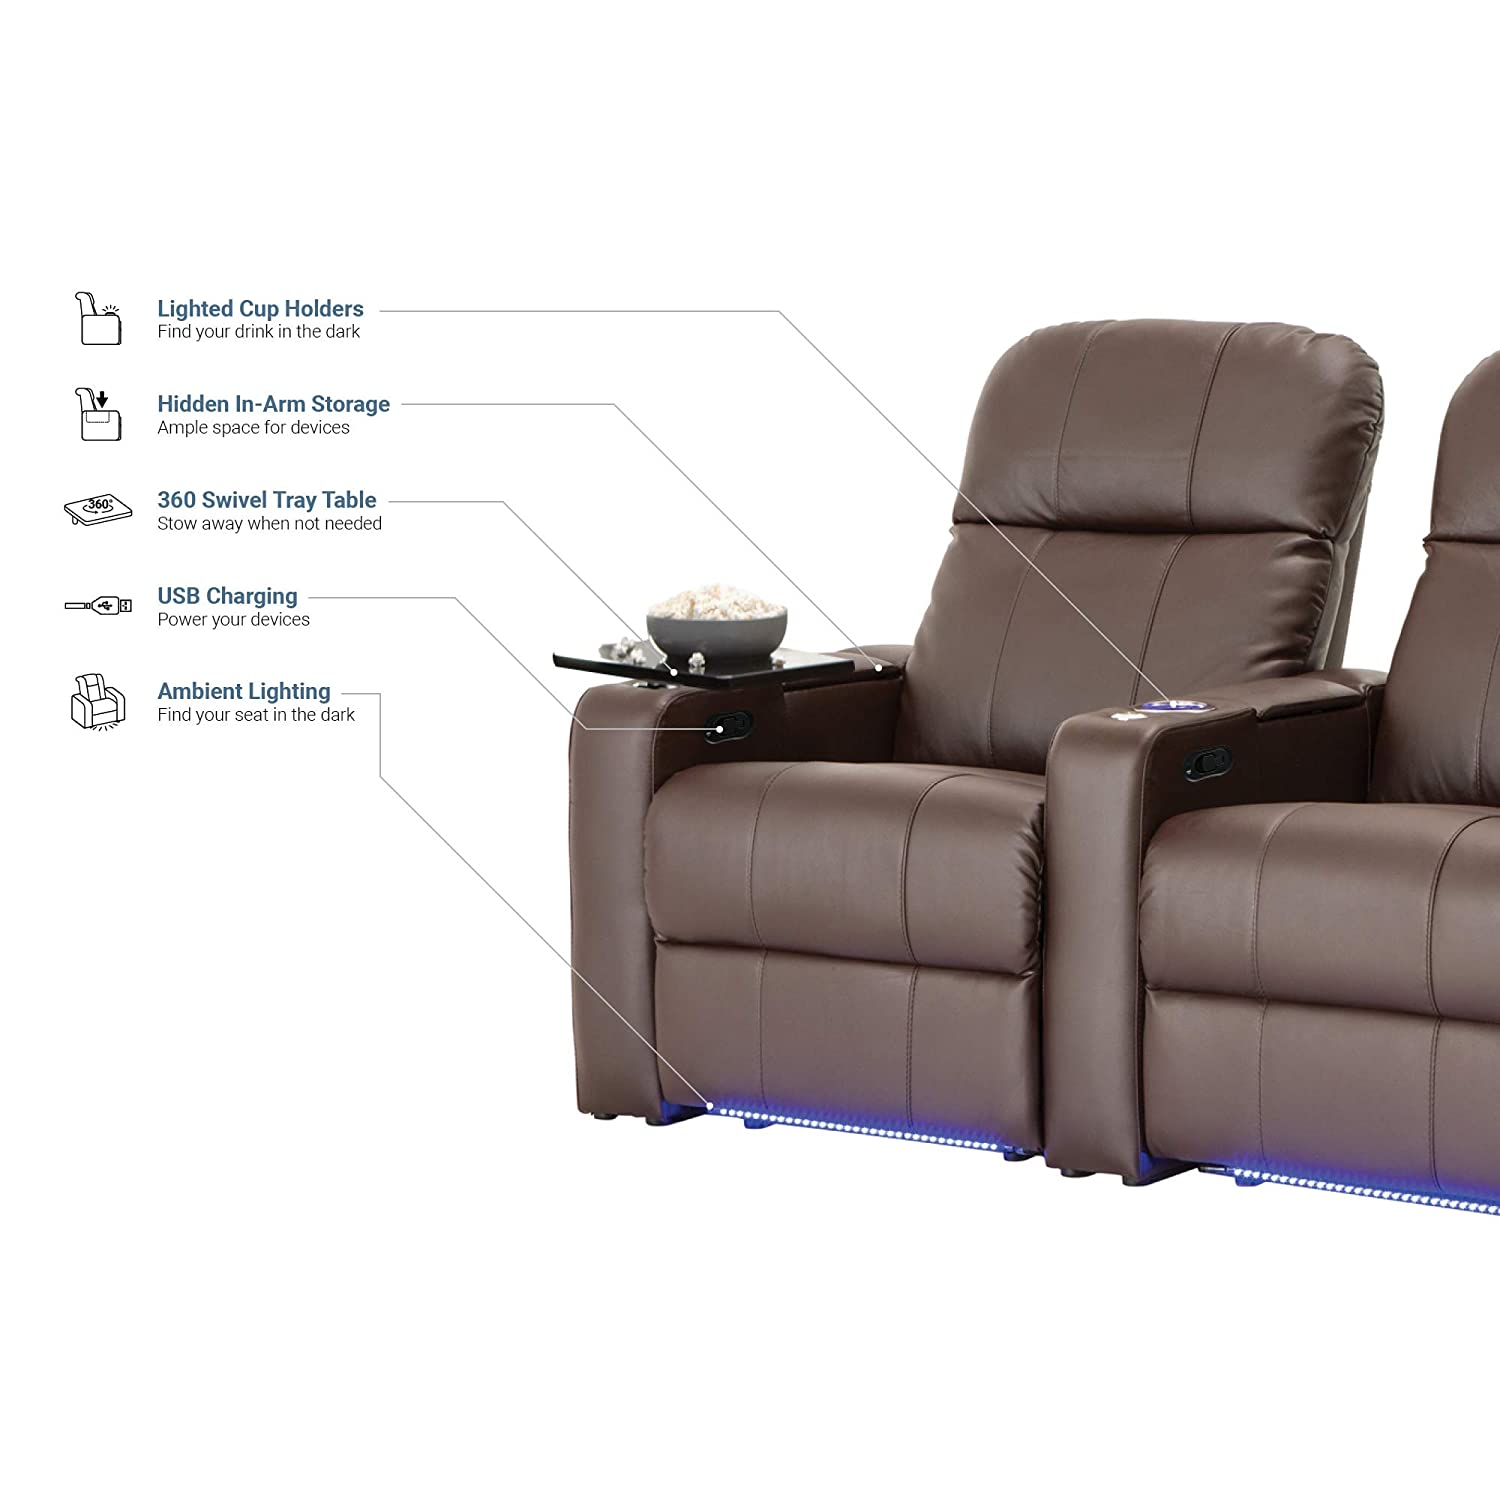 Seatcraft Venetian Home Theater Seating Manual Recline Bonded Leather with Hidden In-Arm Storage, Swivel Tray Tables, USB Charging, Lighted Cup Holders and Base, Row of 2, Brown